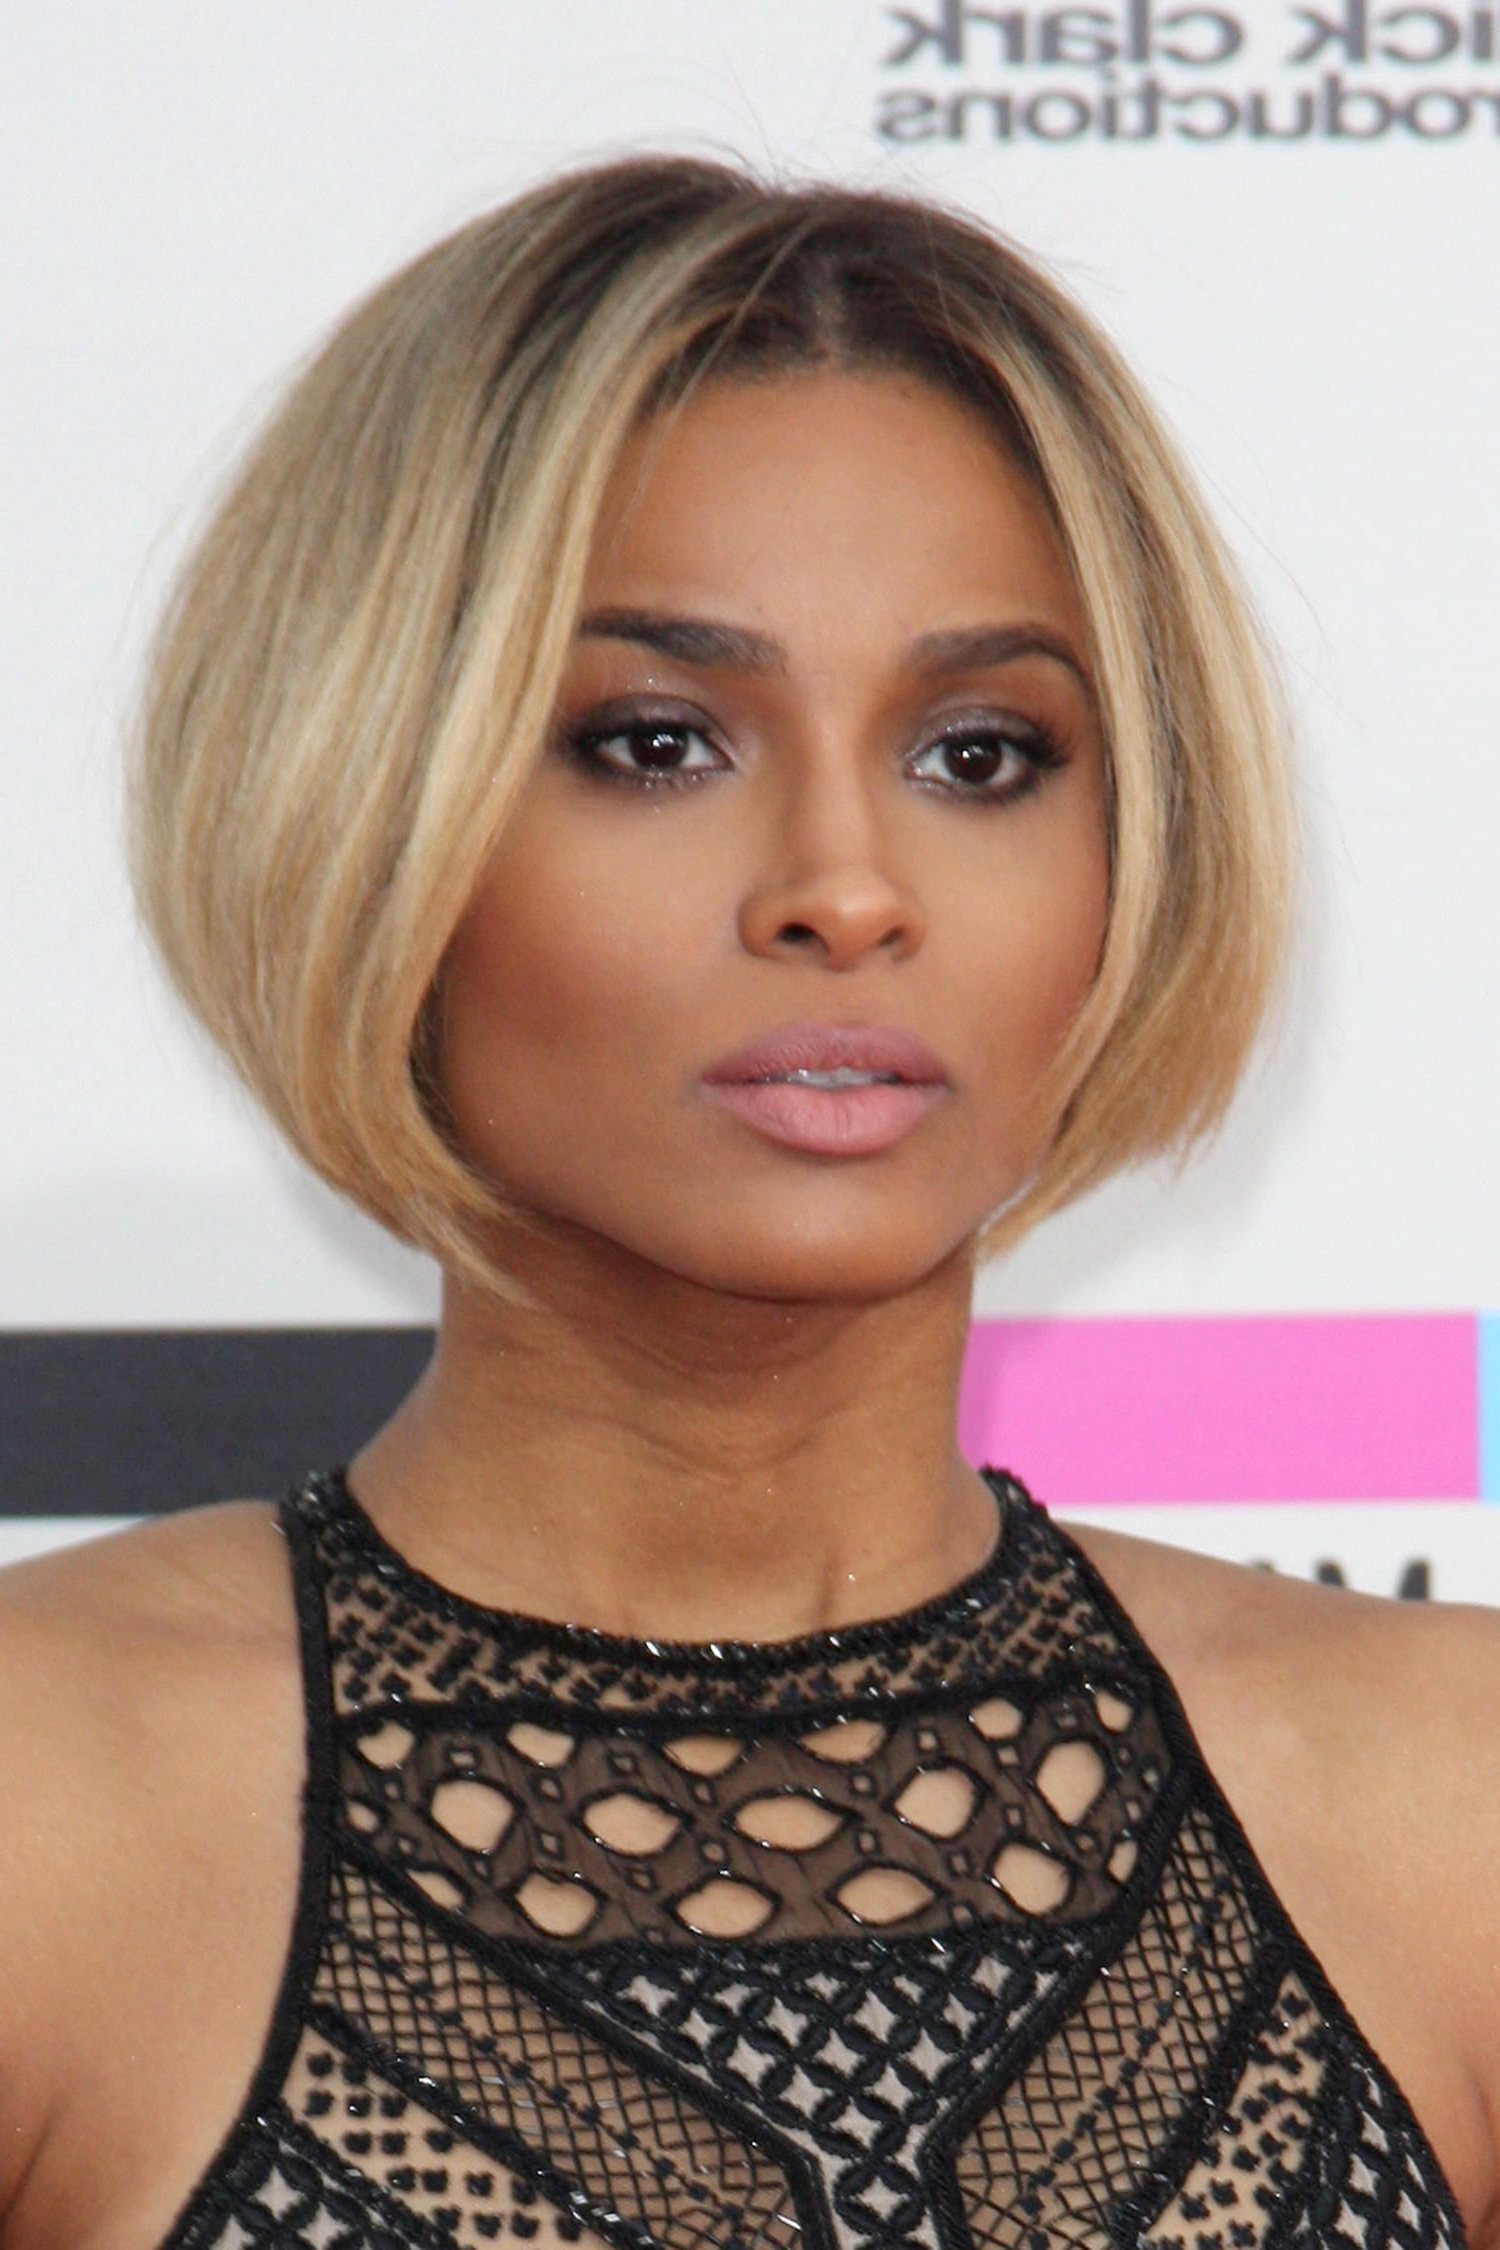 Pin On Hair With Regard To 2019 Chin Length Bob Hairstyles With Middle Part (View 16 of 20)